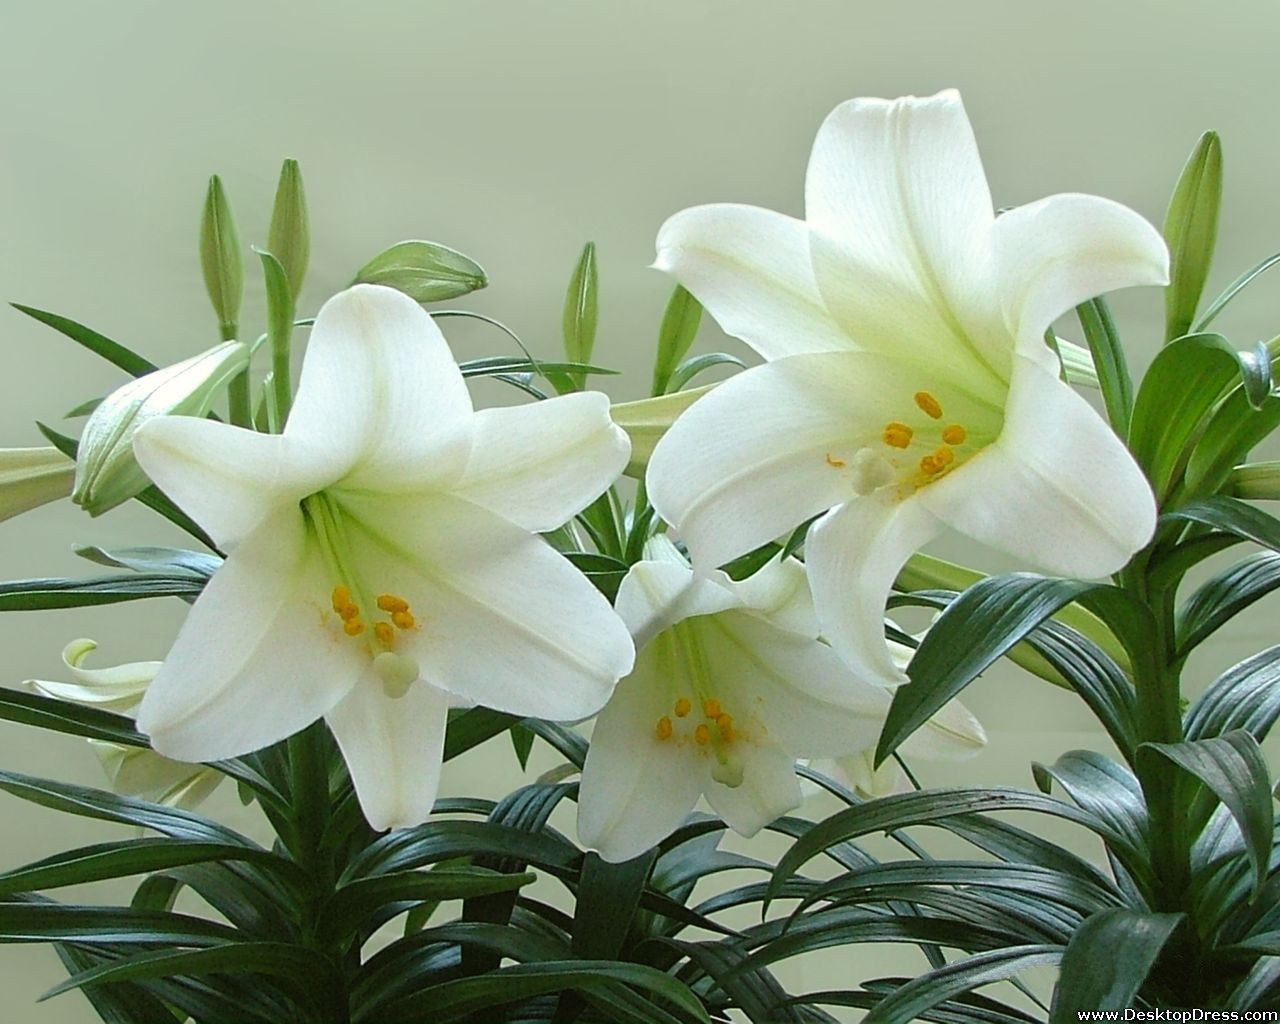 The white lily is a beautiful symbol of the fleur de lis In the French langu